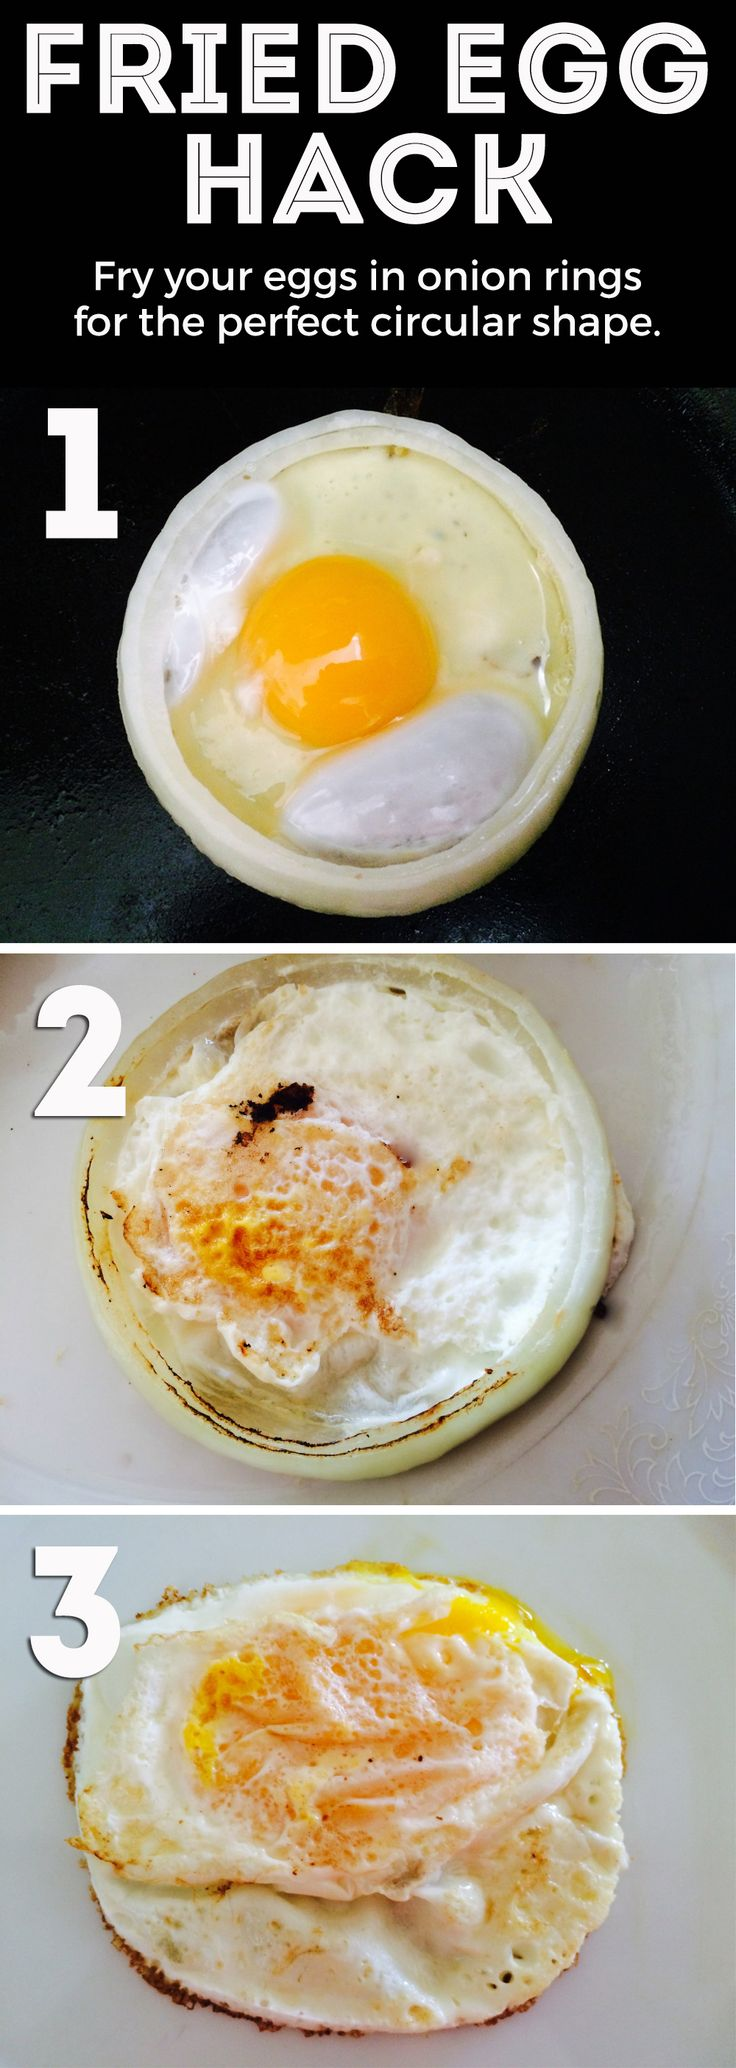 Breakfast hack: fry your eggs inside onion rings for the perfect circular shape. It also makes flipping your eggs a whole lot easier